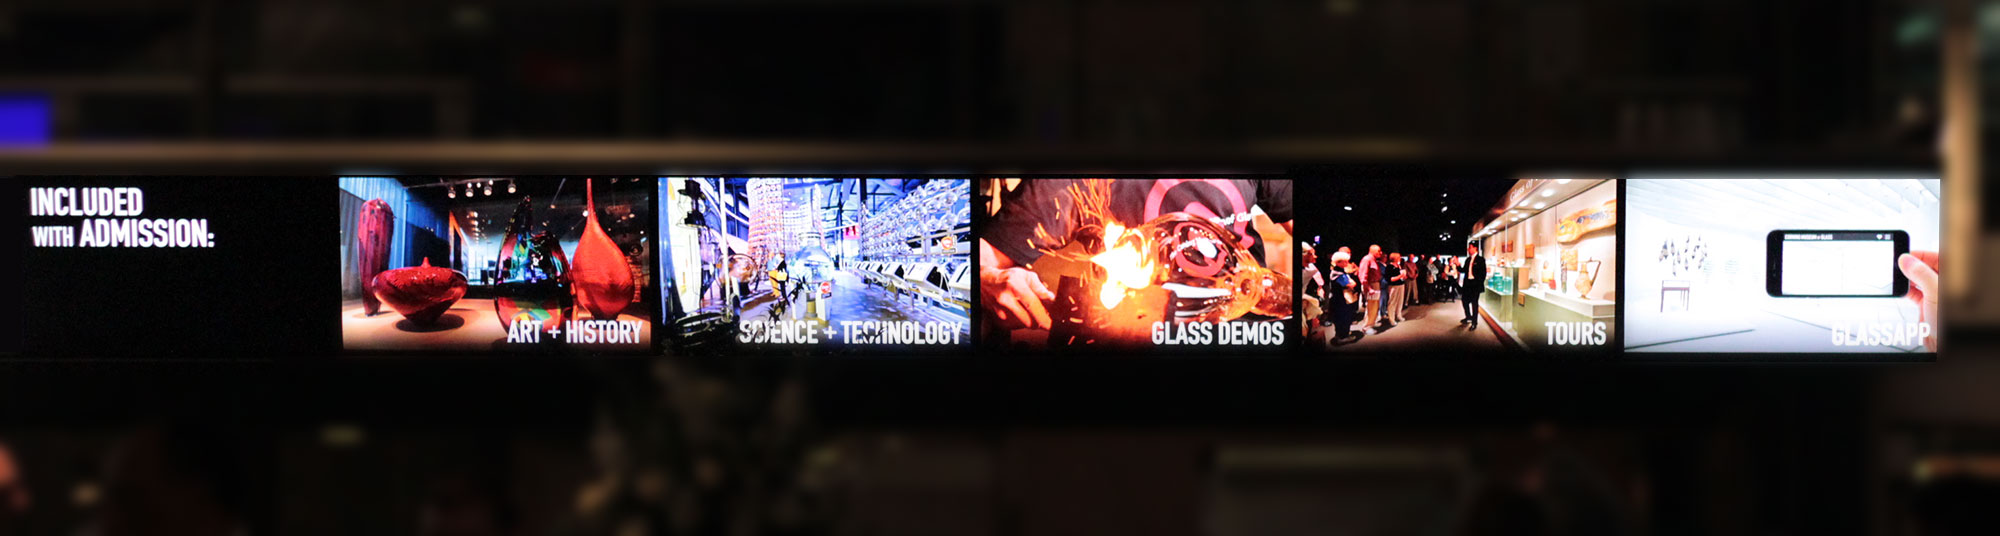 Corning Museum of Glass digital signage redesign